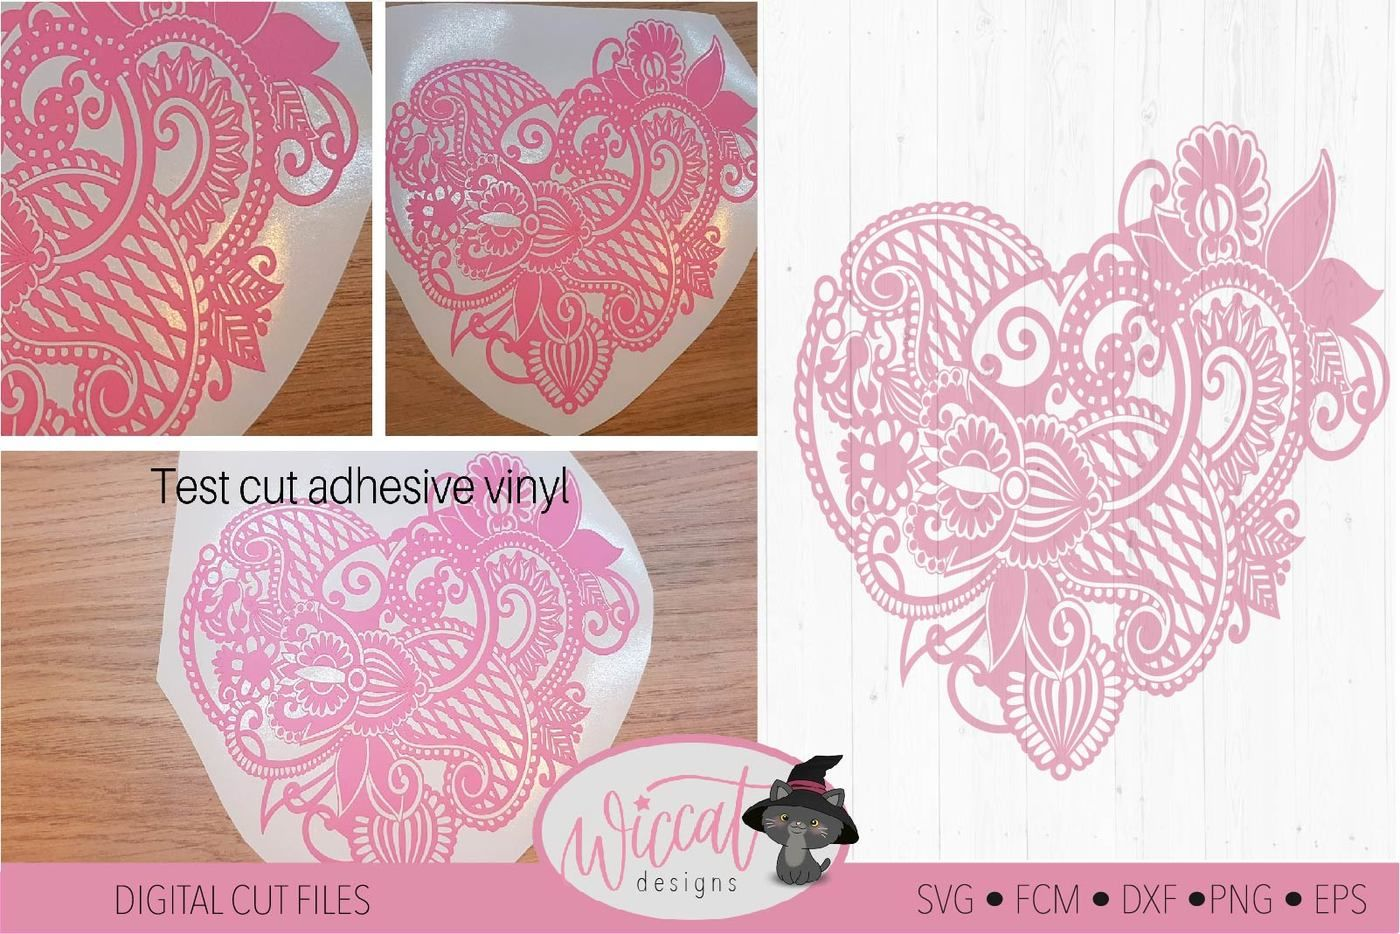 Paisley Heart Valentine Doodle Heart Svg By Wiccatdesigns